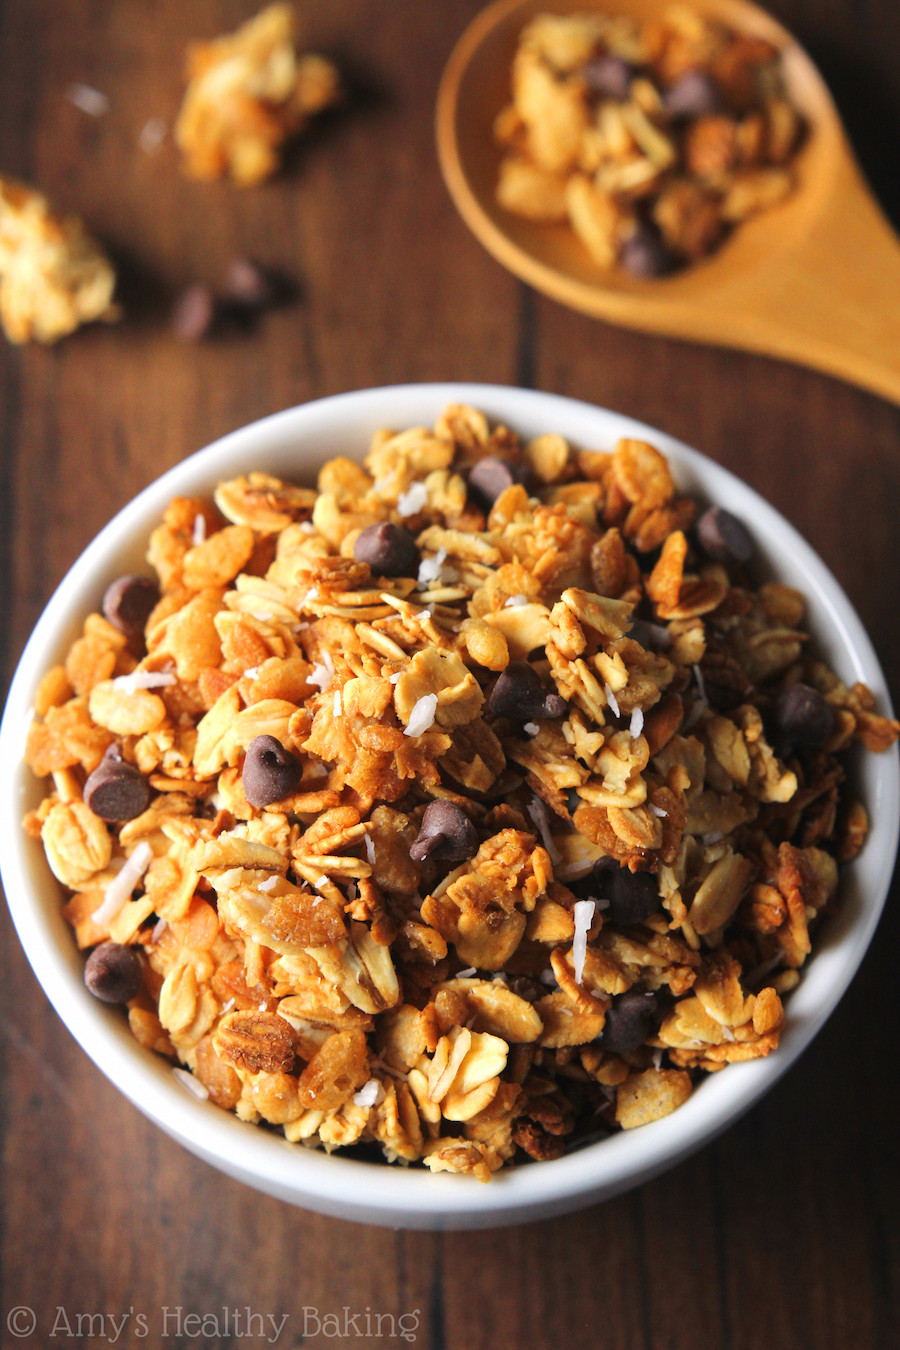 Healthy 5 Ingredient Slow Cooker Recipes the Best Ideas for Healthy 5 Ingre Nt Slow Cooker Granola